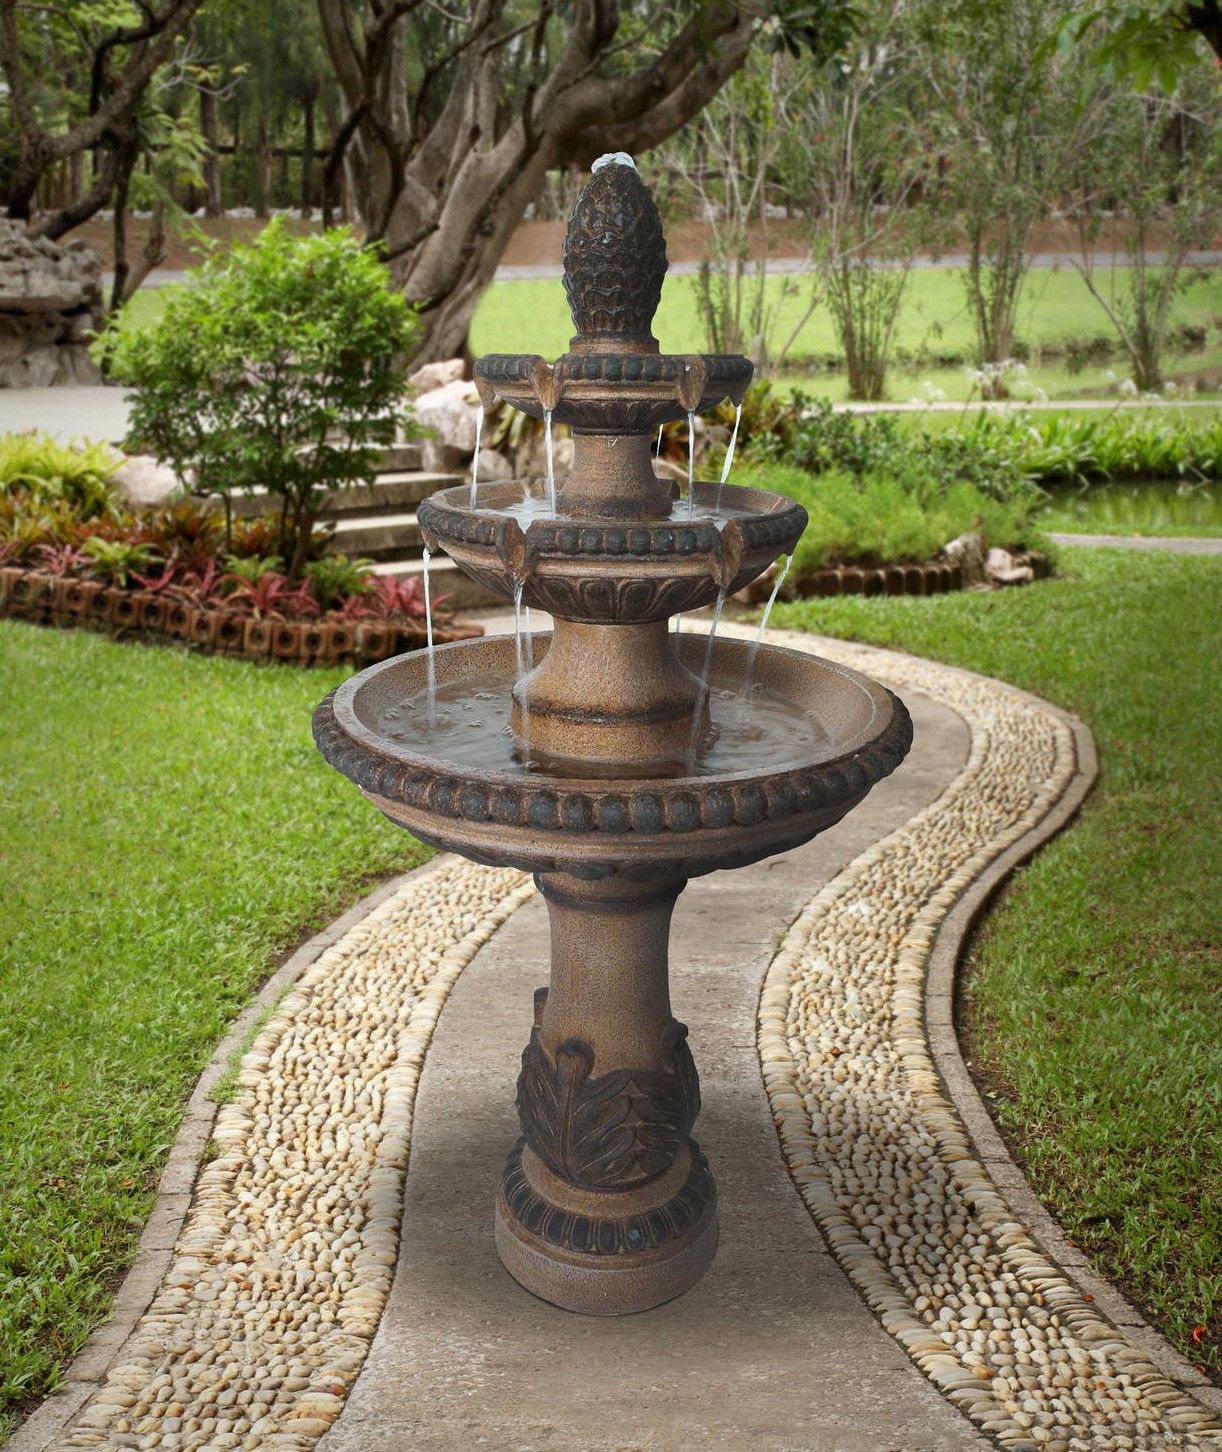 Outdoor Tiered Fountain Large Waterfall Cascade Stone 3 Tier Water Bird Bath Ebay Fountains Outdoor Large Outdoor Fountains Landscaping With Rocks